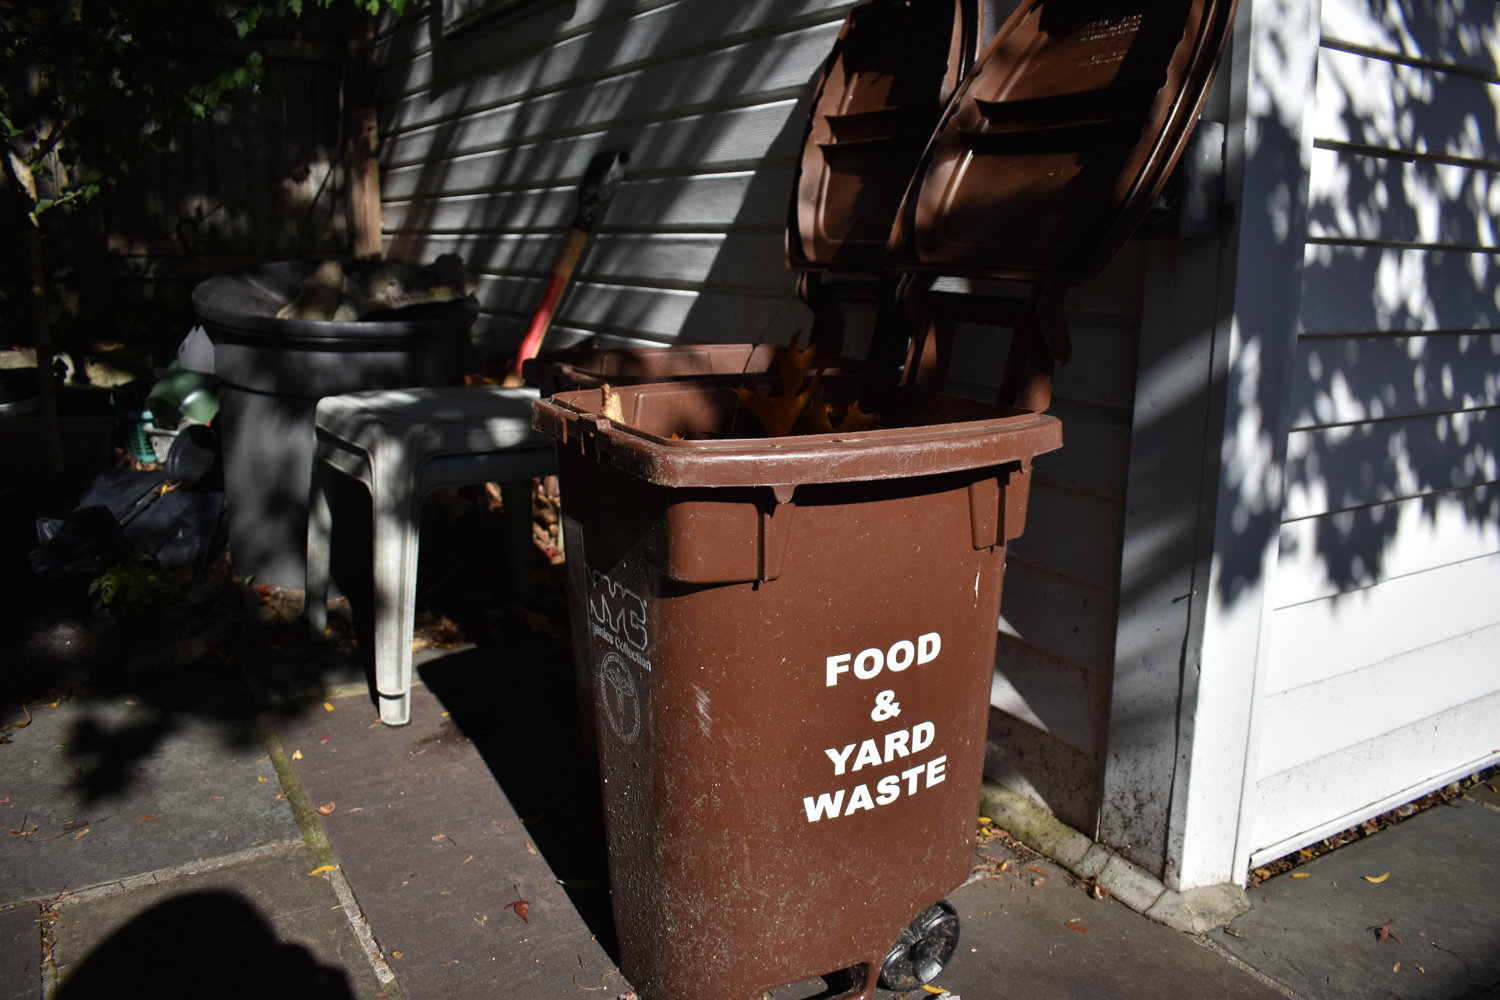 A food waste bin sits outside of Matt Turov and Debbi Dolan's home. They feel the process of composting is easy, and wish more of their neighbors did it.